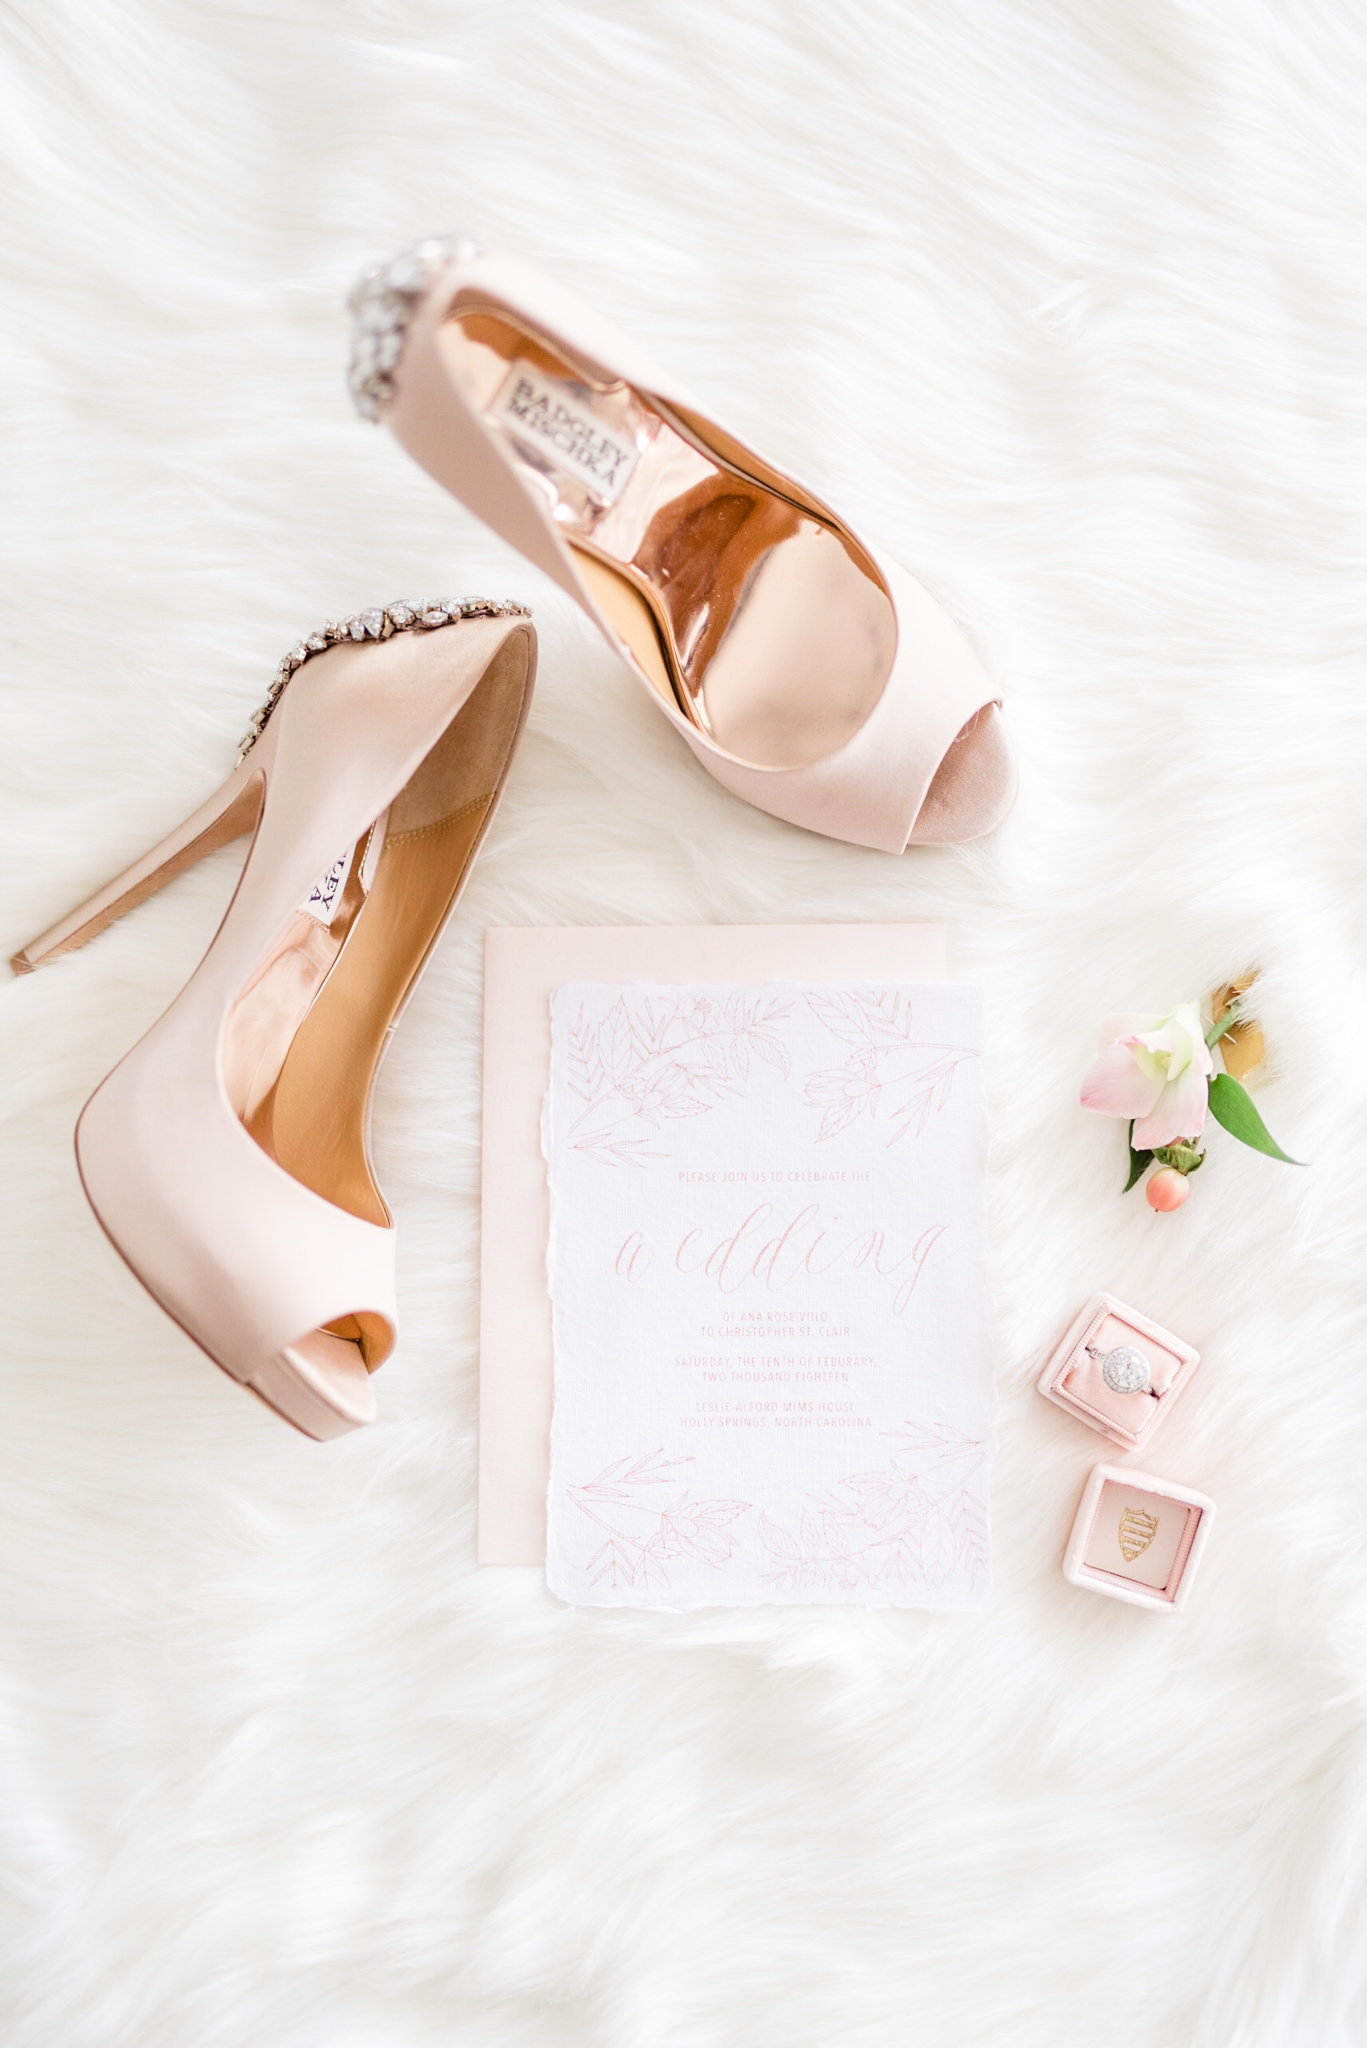 Wedding shoes sit next to invitation suite.